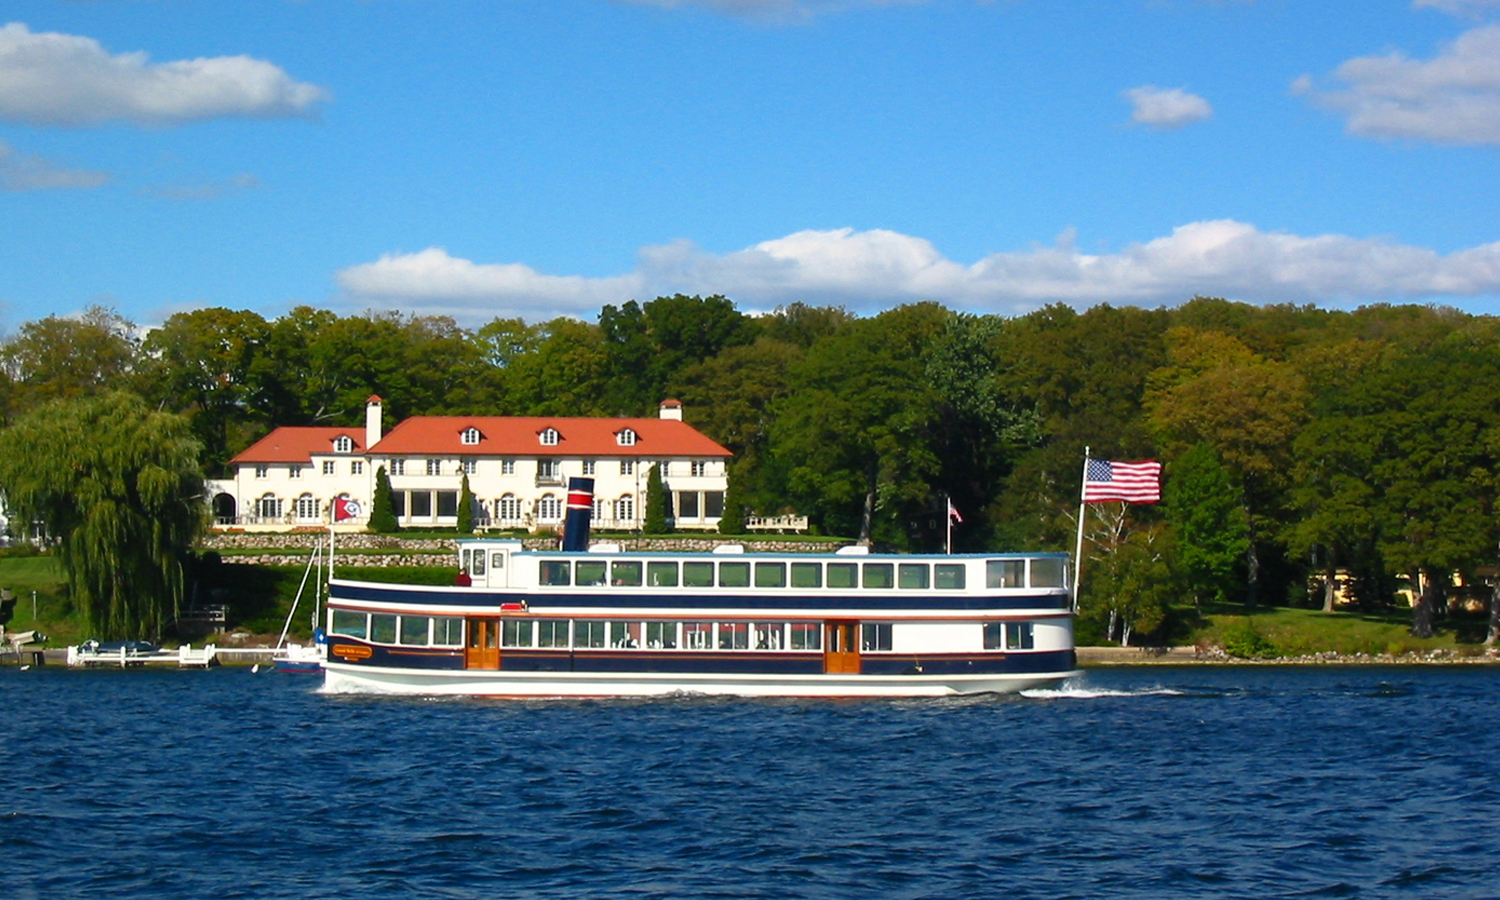 Take a Boat Tour with Lake Geneva Cruise Line